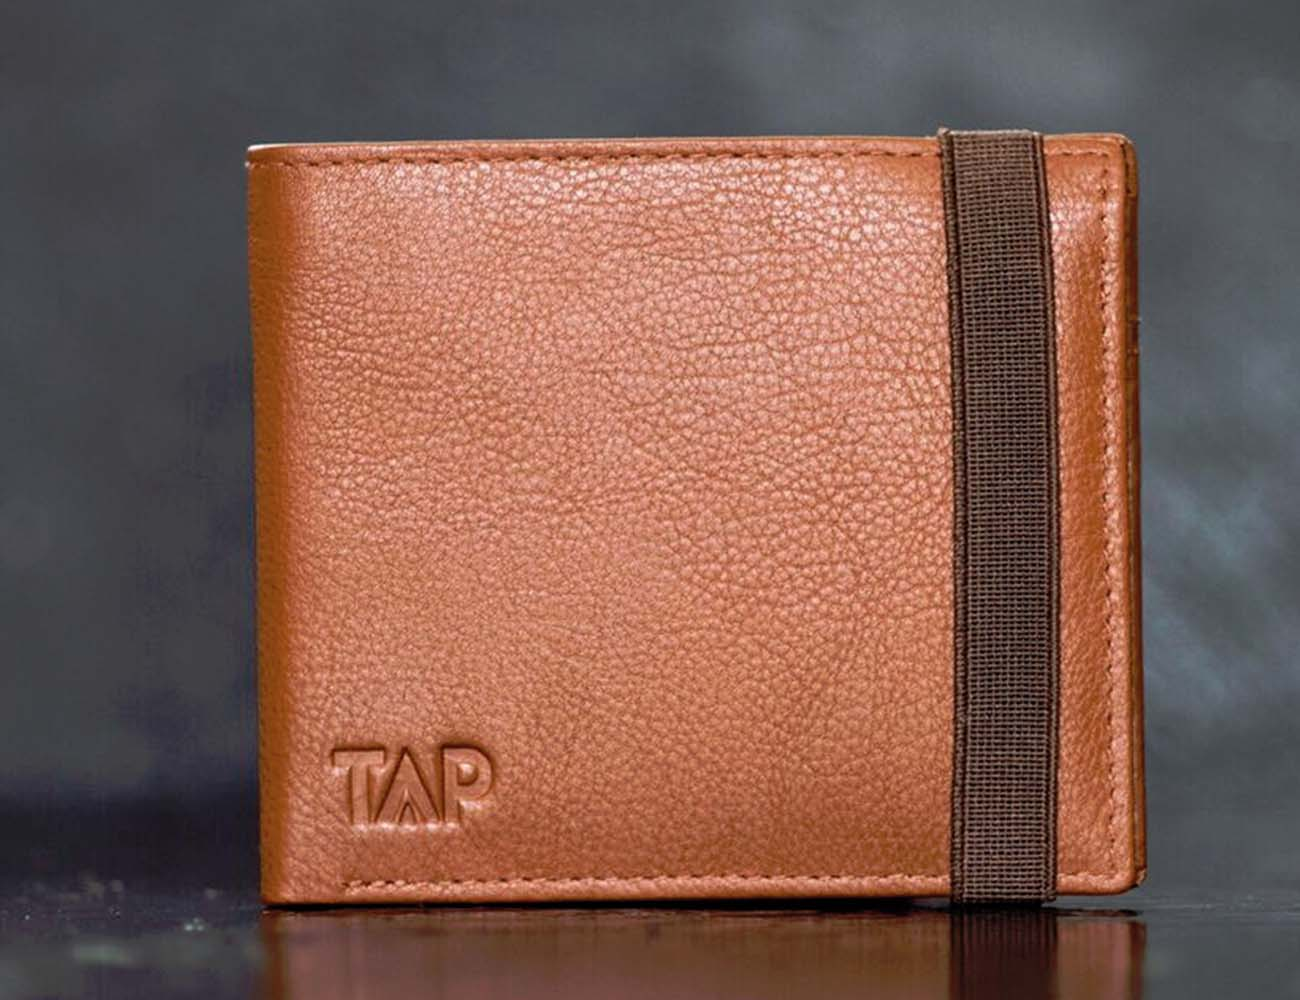 Tap Wallet – Say Goodbye to Card Clash and Wireless Theft